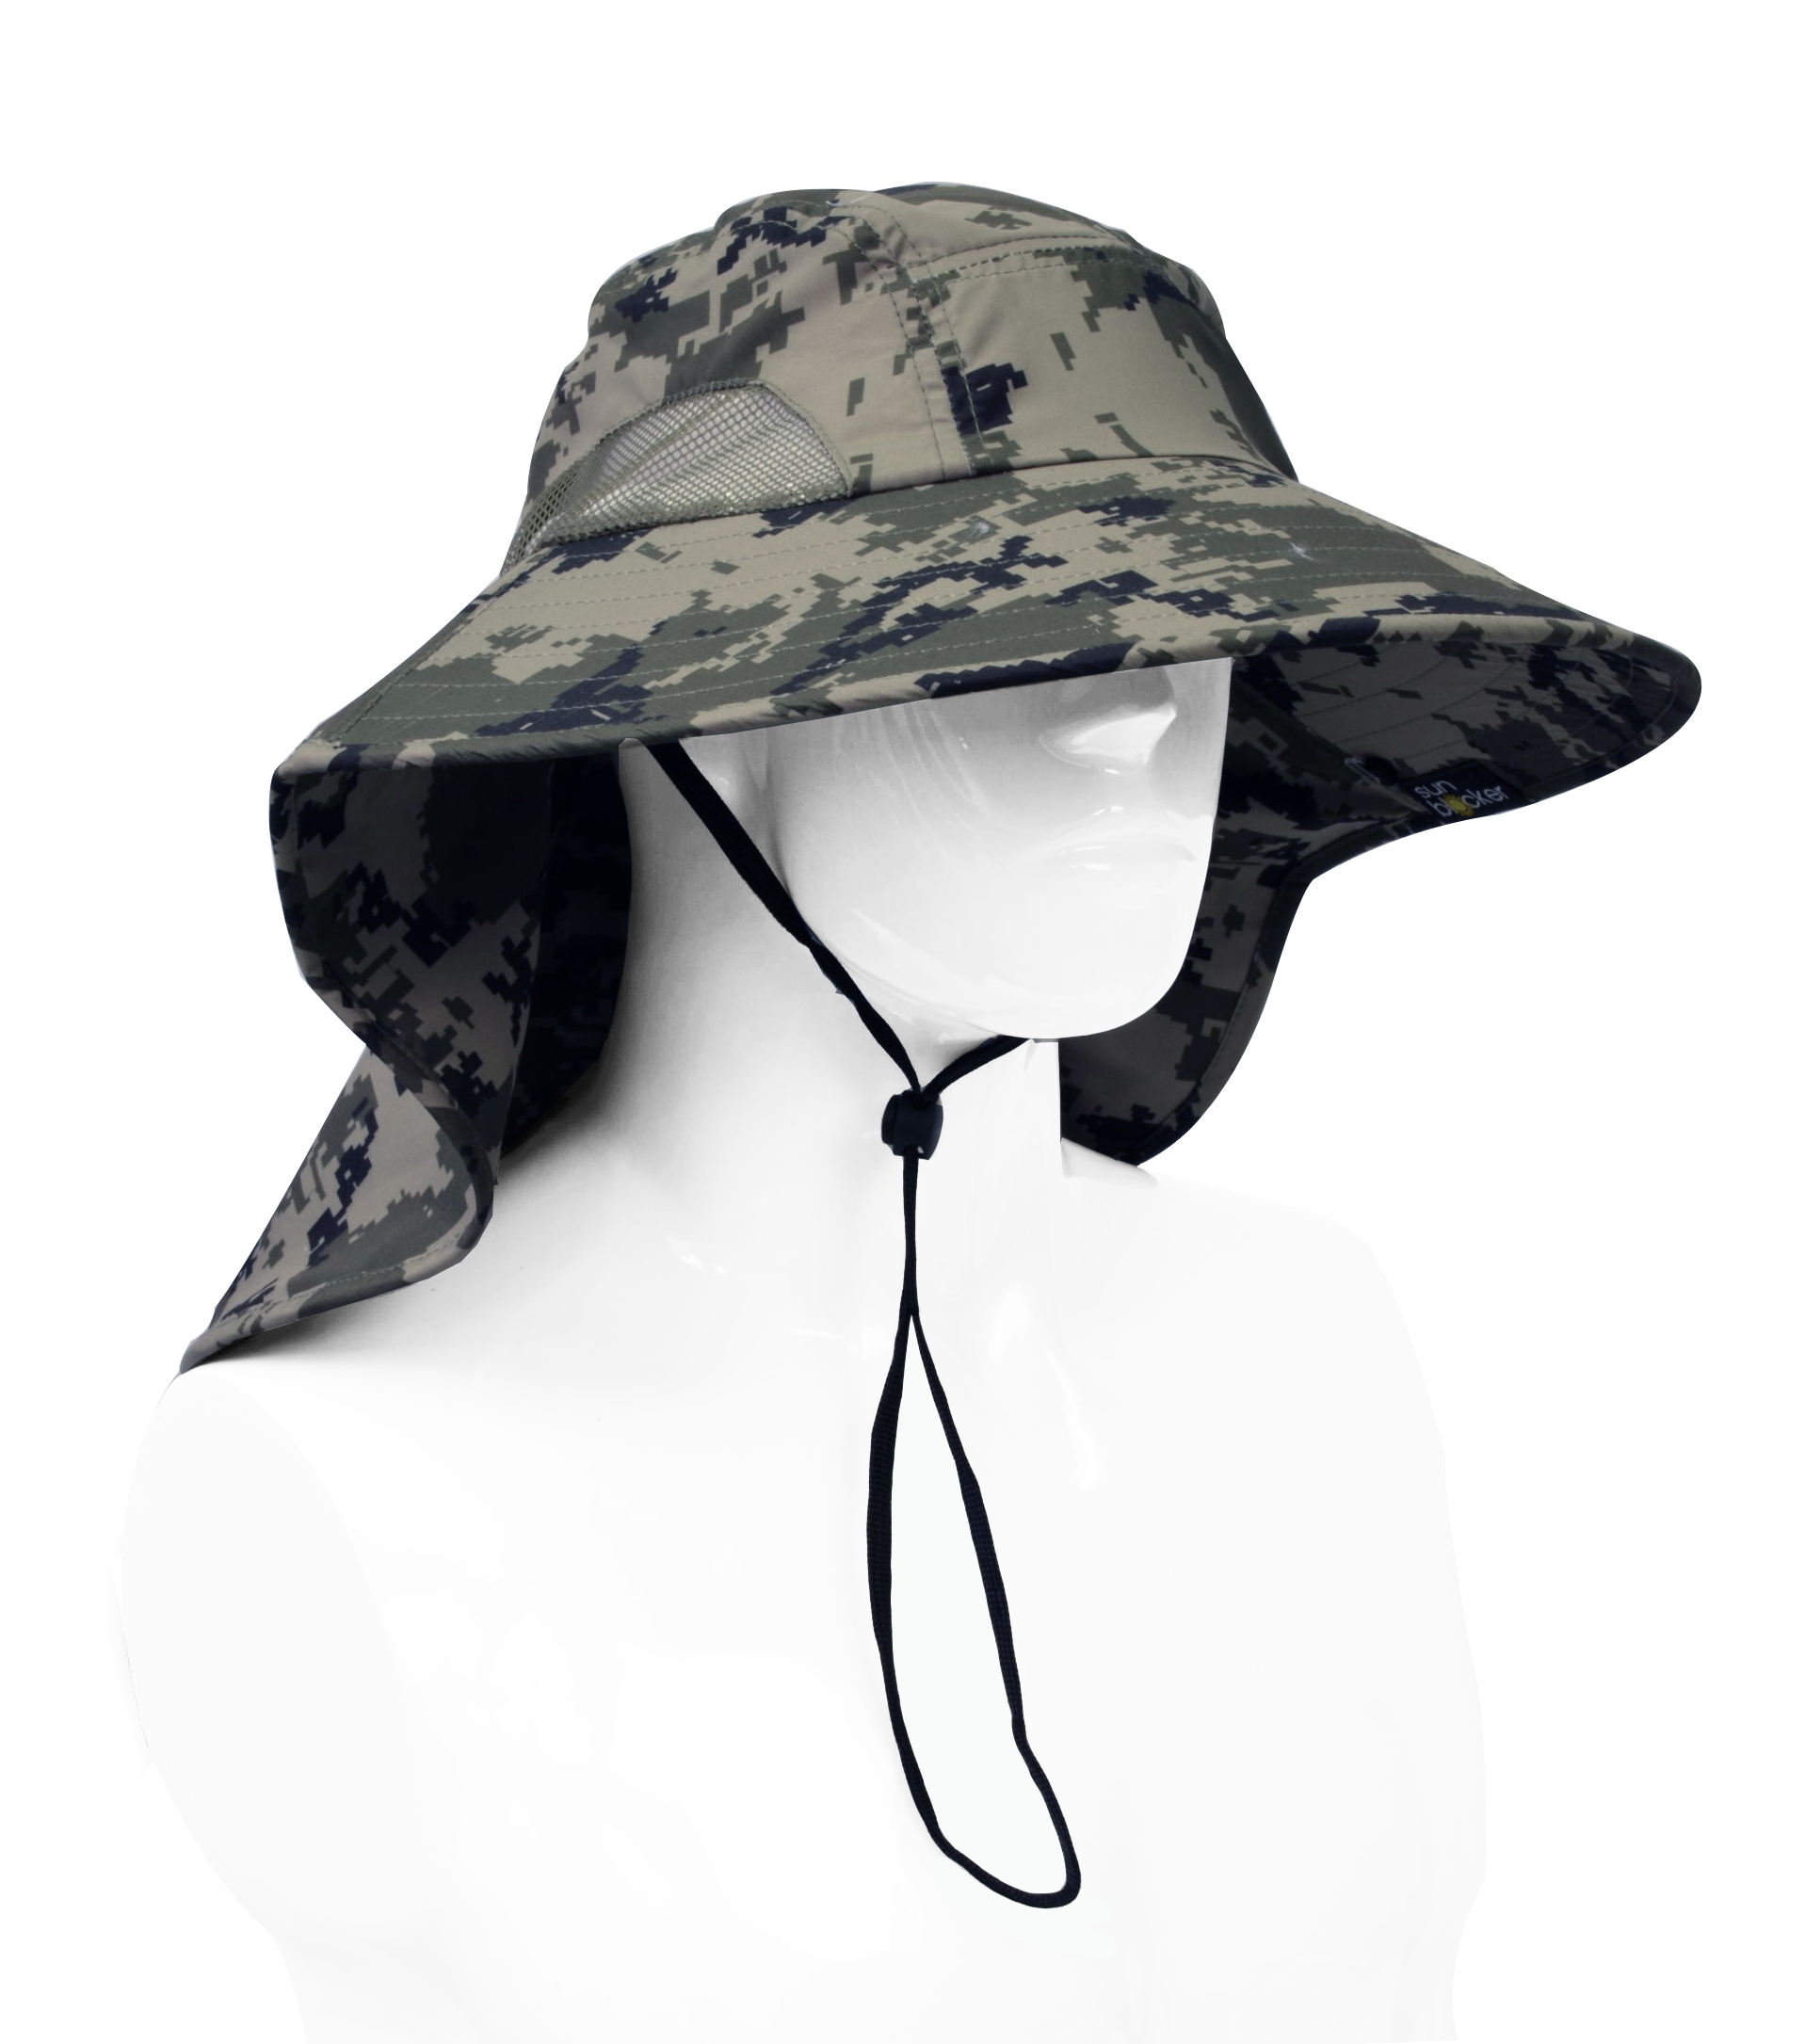 Sun-Hat-Camo-Cap-w-Wide-Brim-Ear-amp-Neck-UV-Protection-for-Fishing-Camping-Hiking thumbnail 8